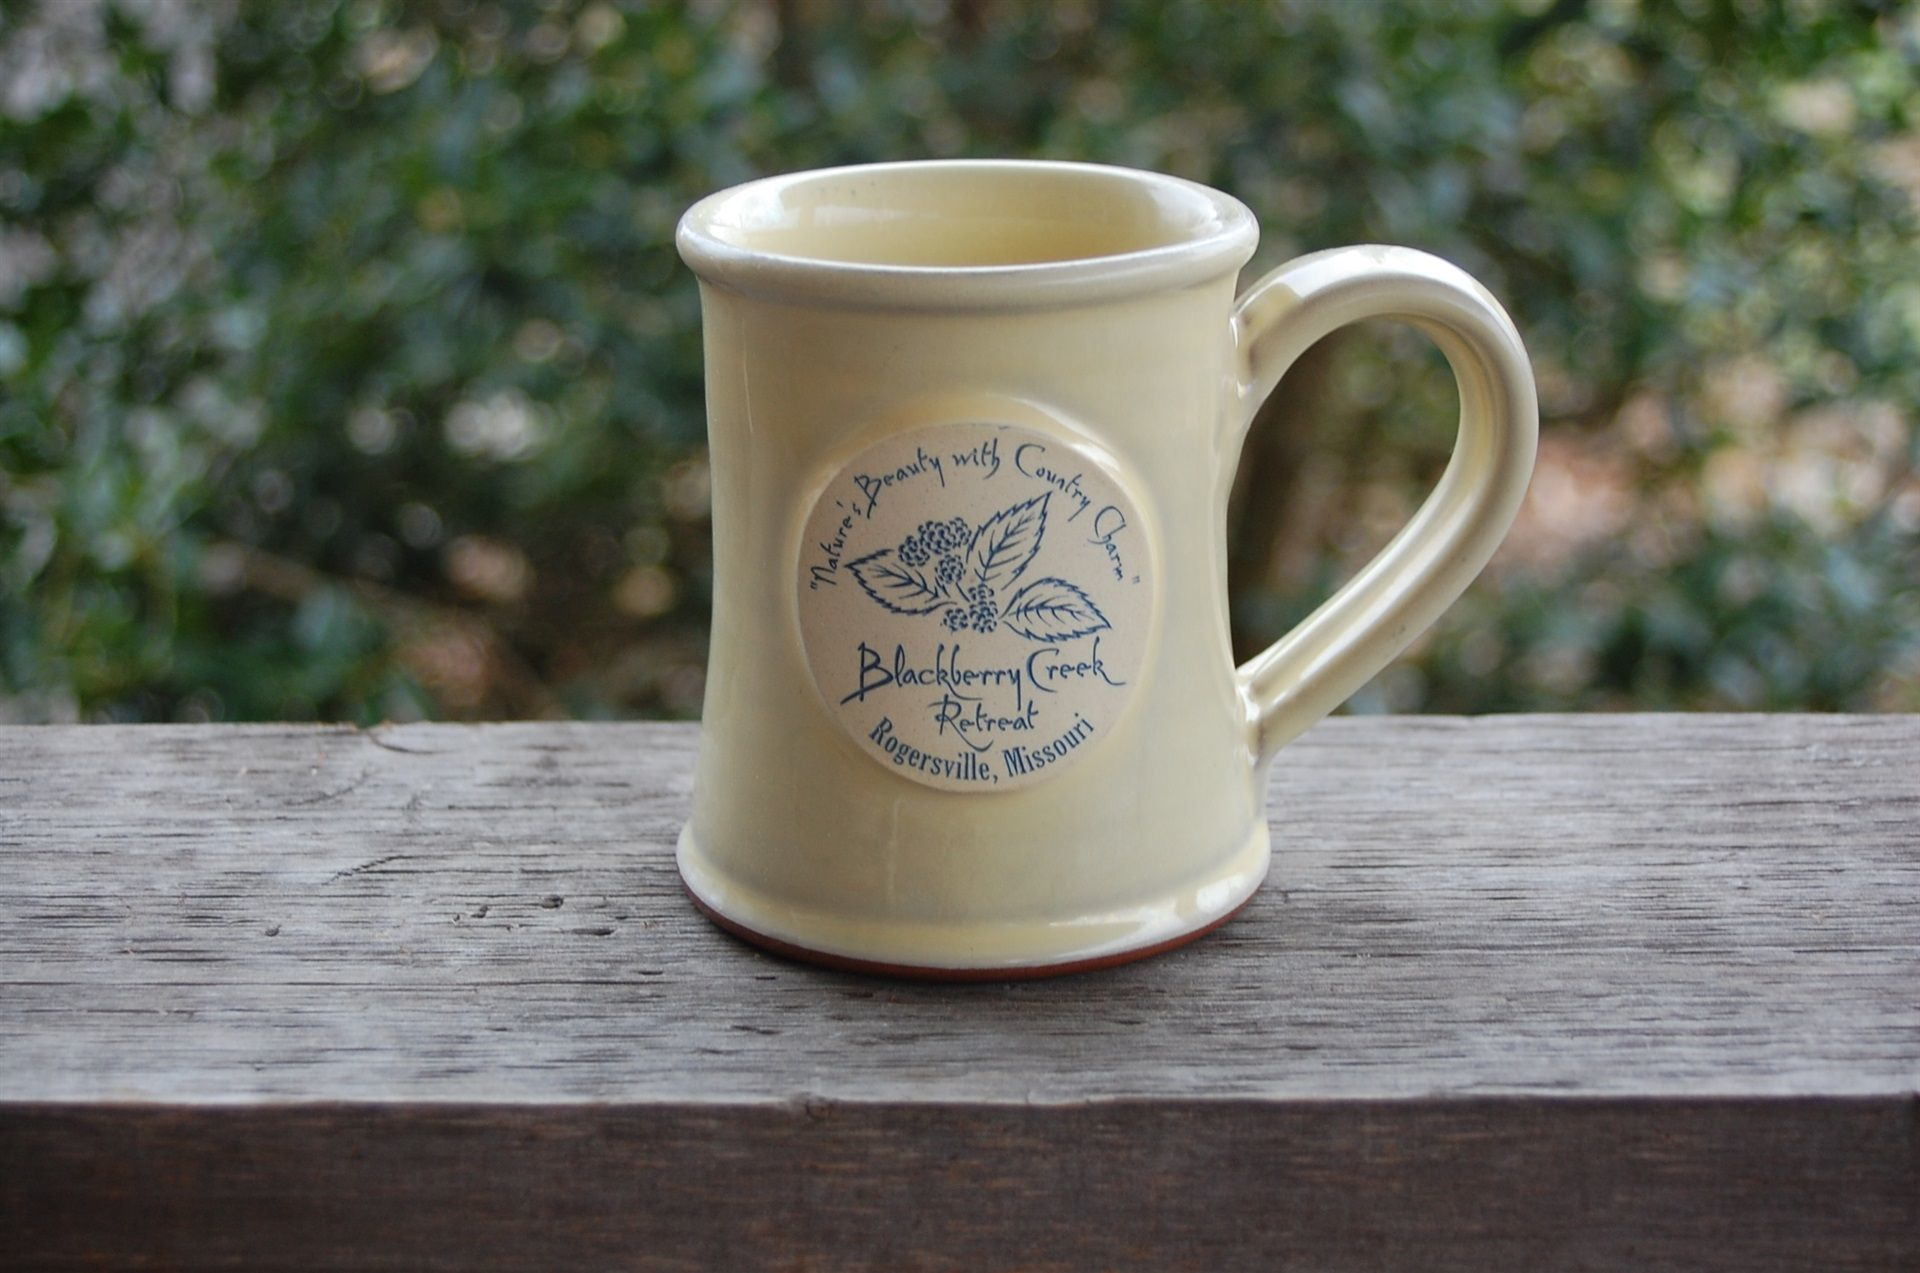 official Blackberry Creek Bed & Breakfast merchandise